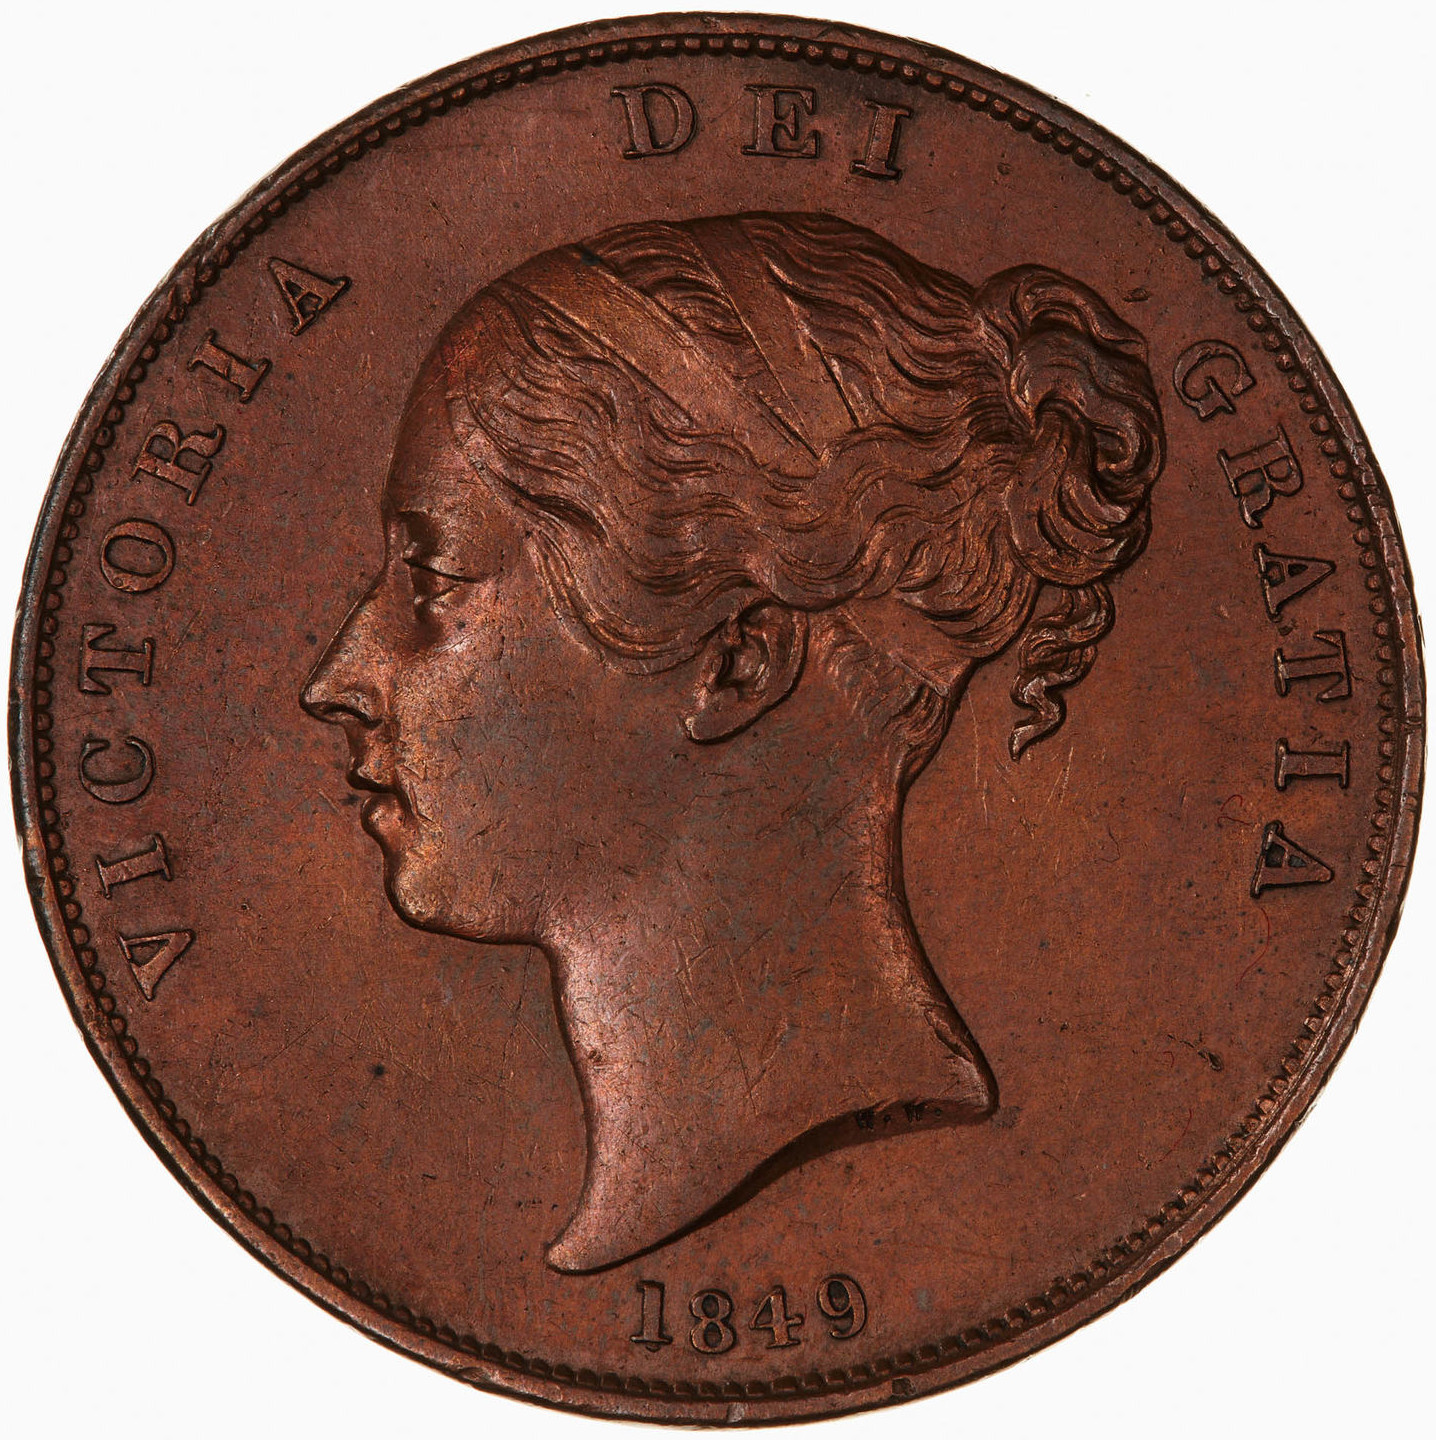 Penny (Pre-decimal): Photo Coin - Penny, Queen Victoria, Great Britain, 1849